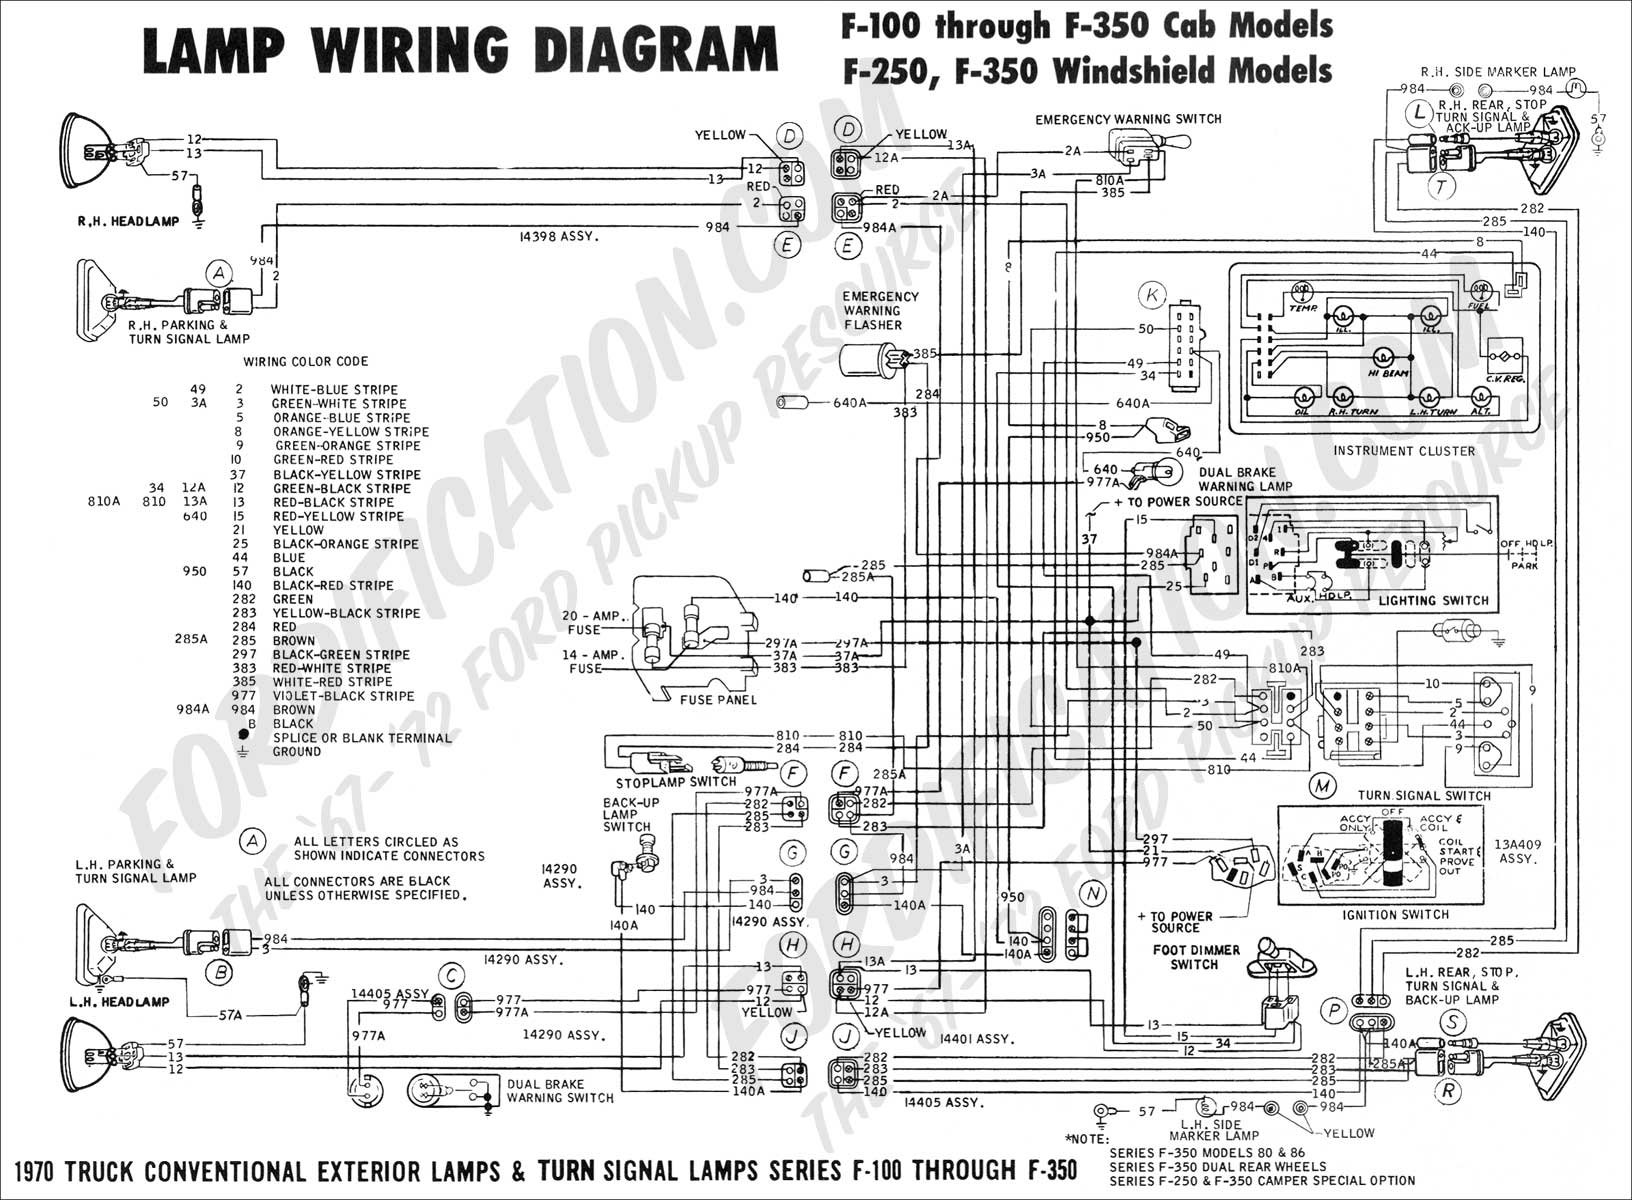 Wiring Diagram 1999 F250 7.3 - Wiring Diagram Data - 1999 Ford F250 Trailer Wiring Diagram